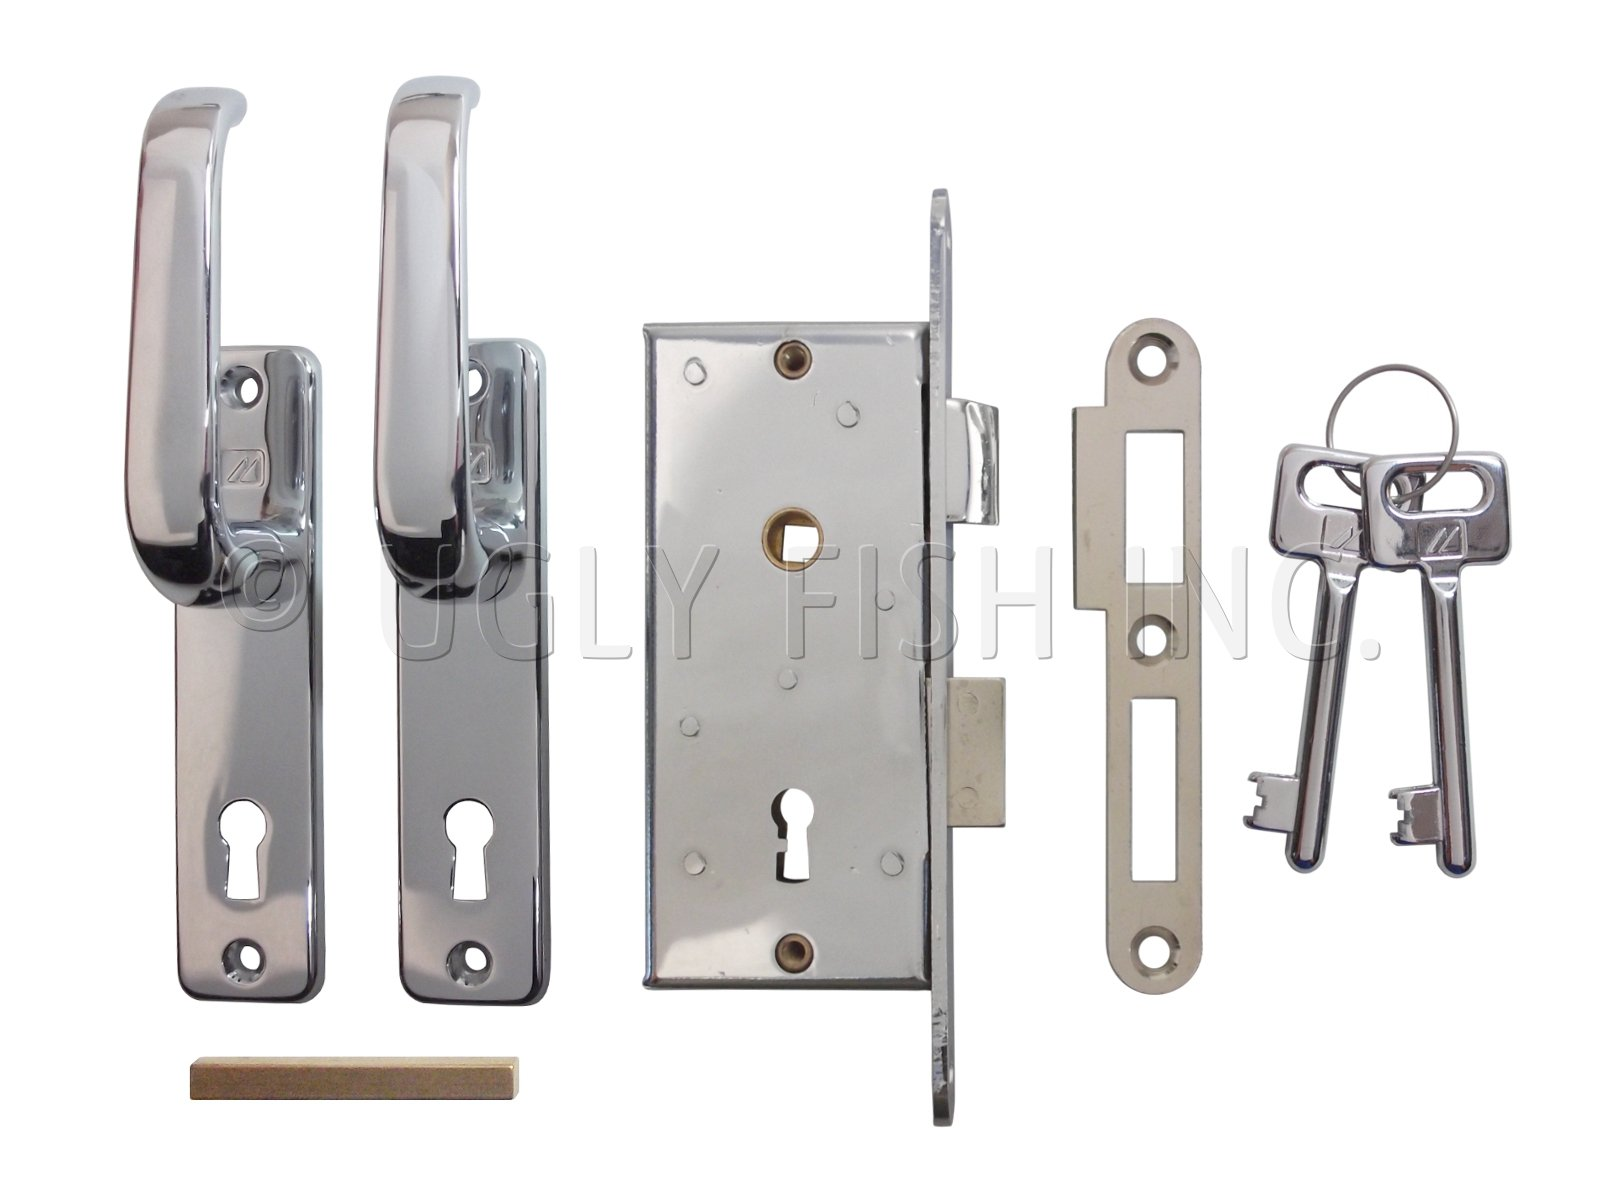 Sliding Cabinet Door Hardware Mc 99 2 73x2 Mobella Slim Swinging Door Latch